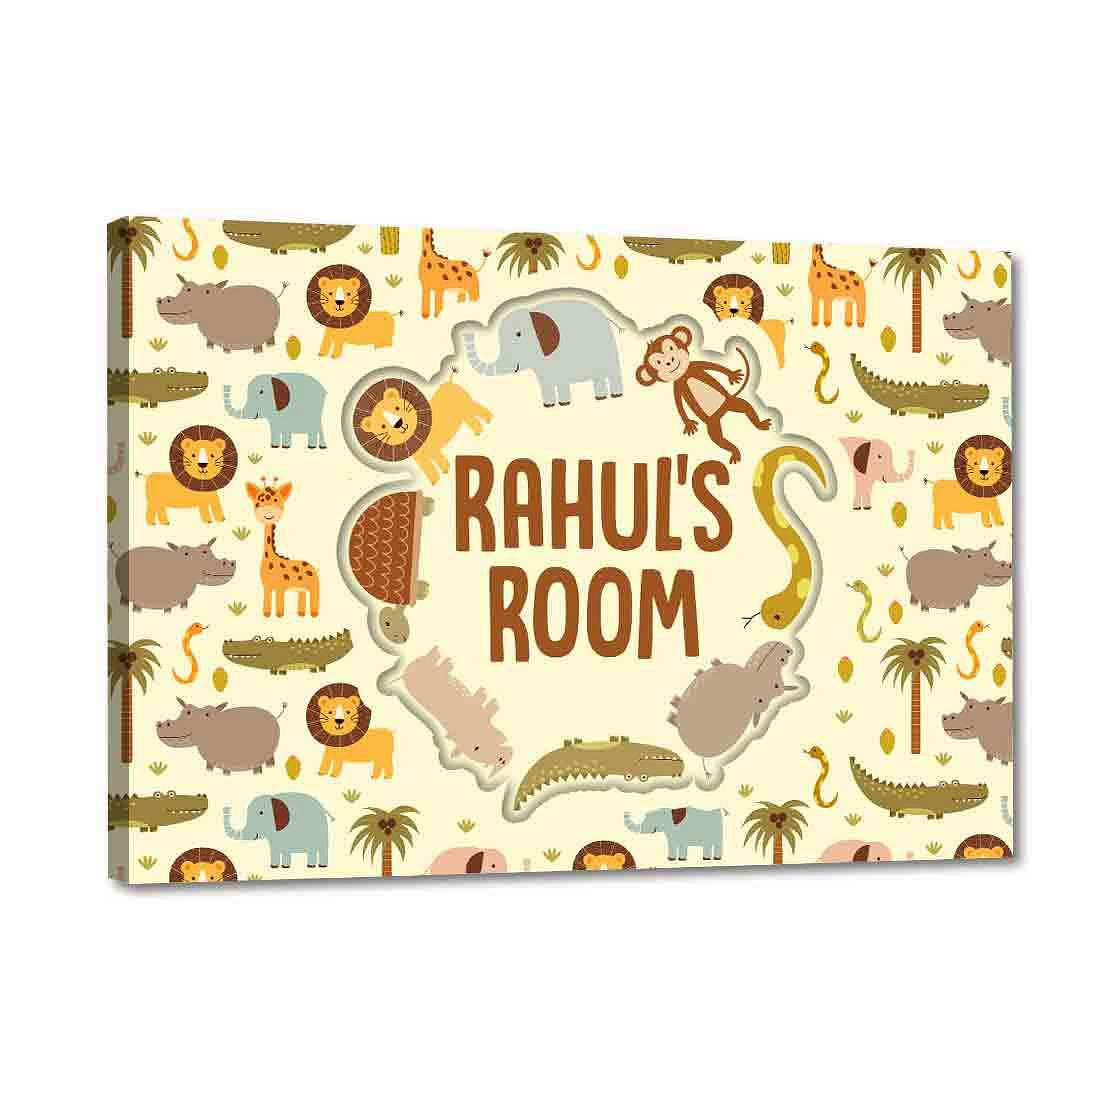 personalized name plates for kids room